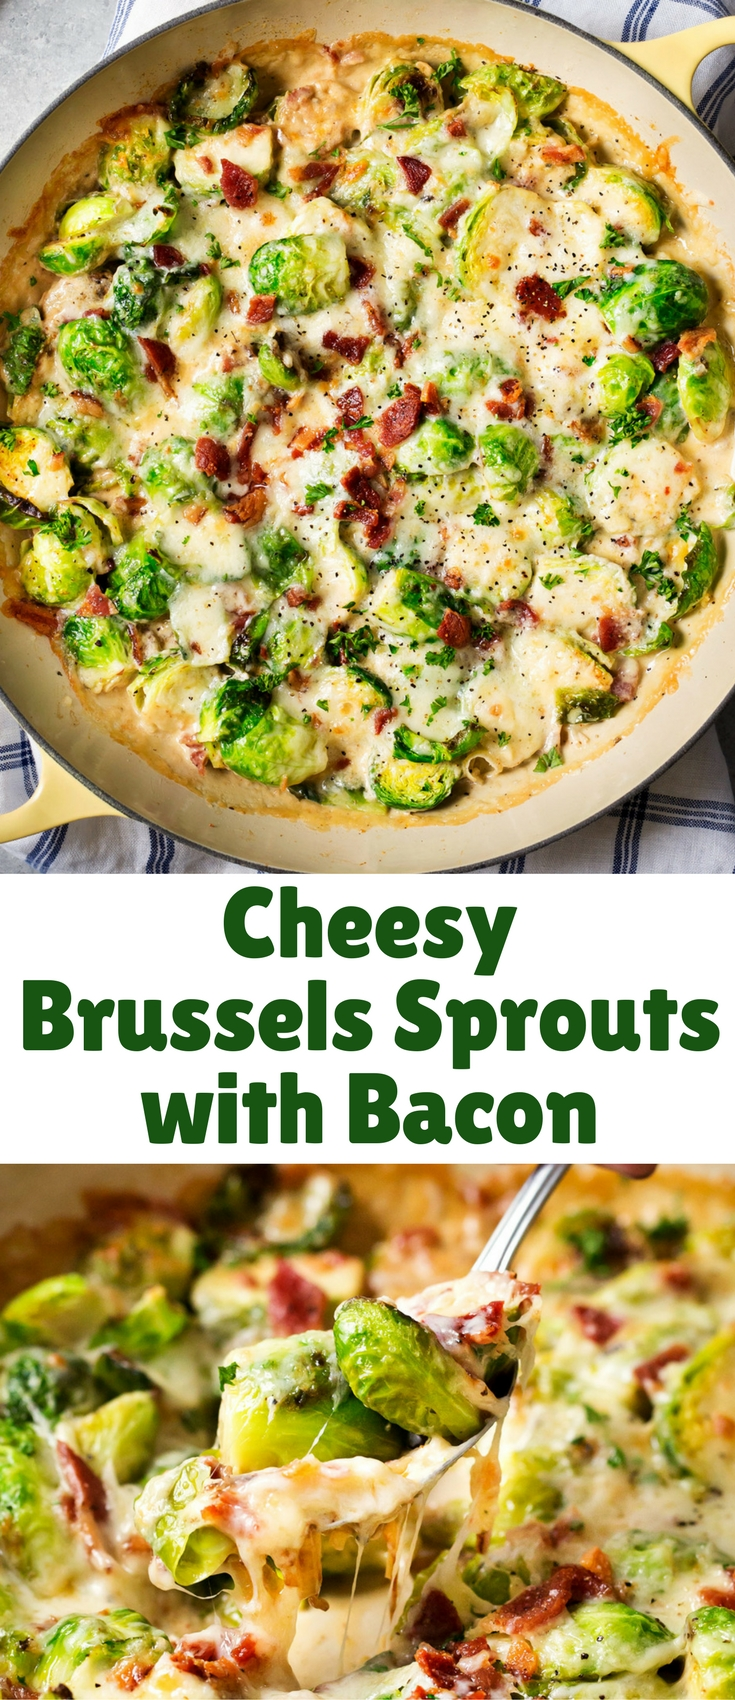 Even if you think you don't like them, these cheesy Brussels sprouts with bacon will definitely change your mind! Cheesy, creamy, and FULL of flavor!